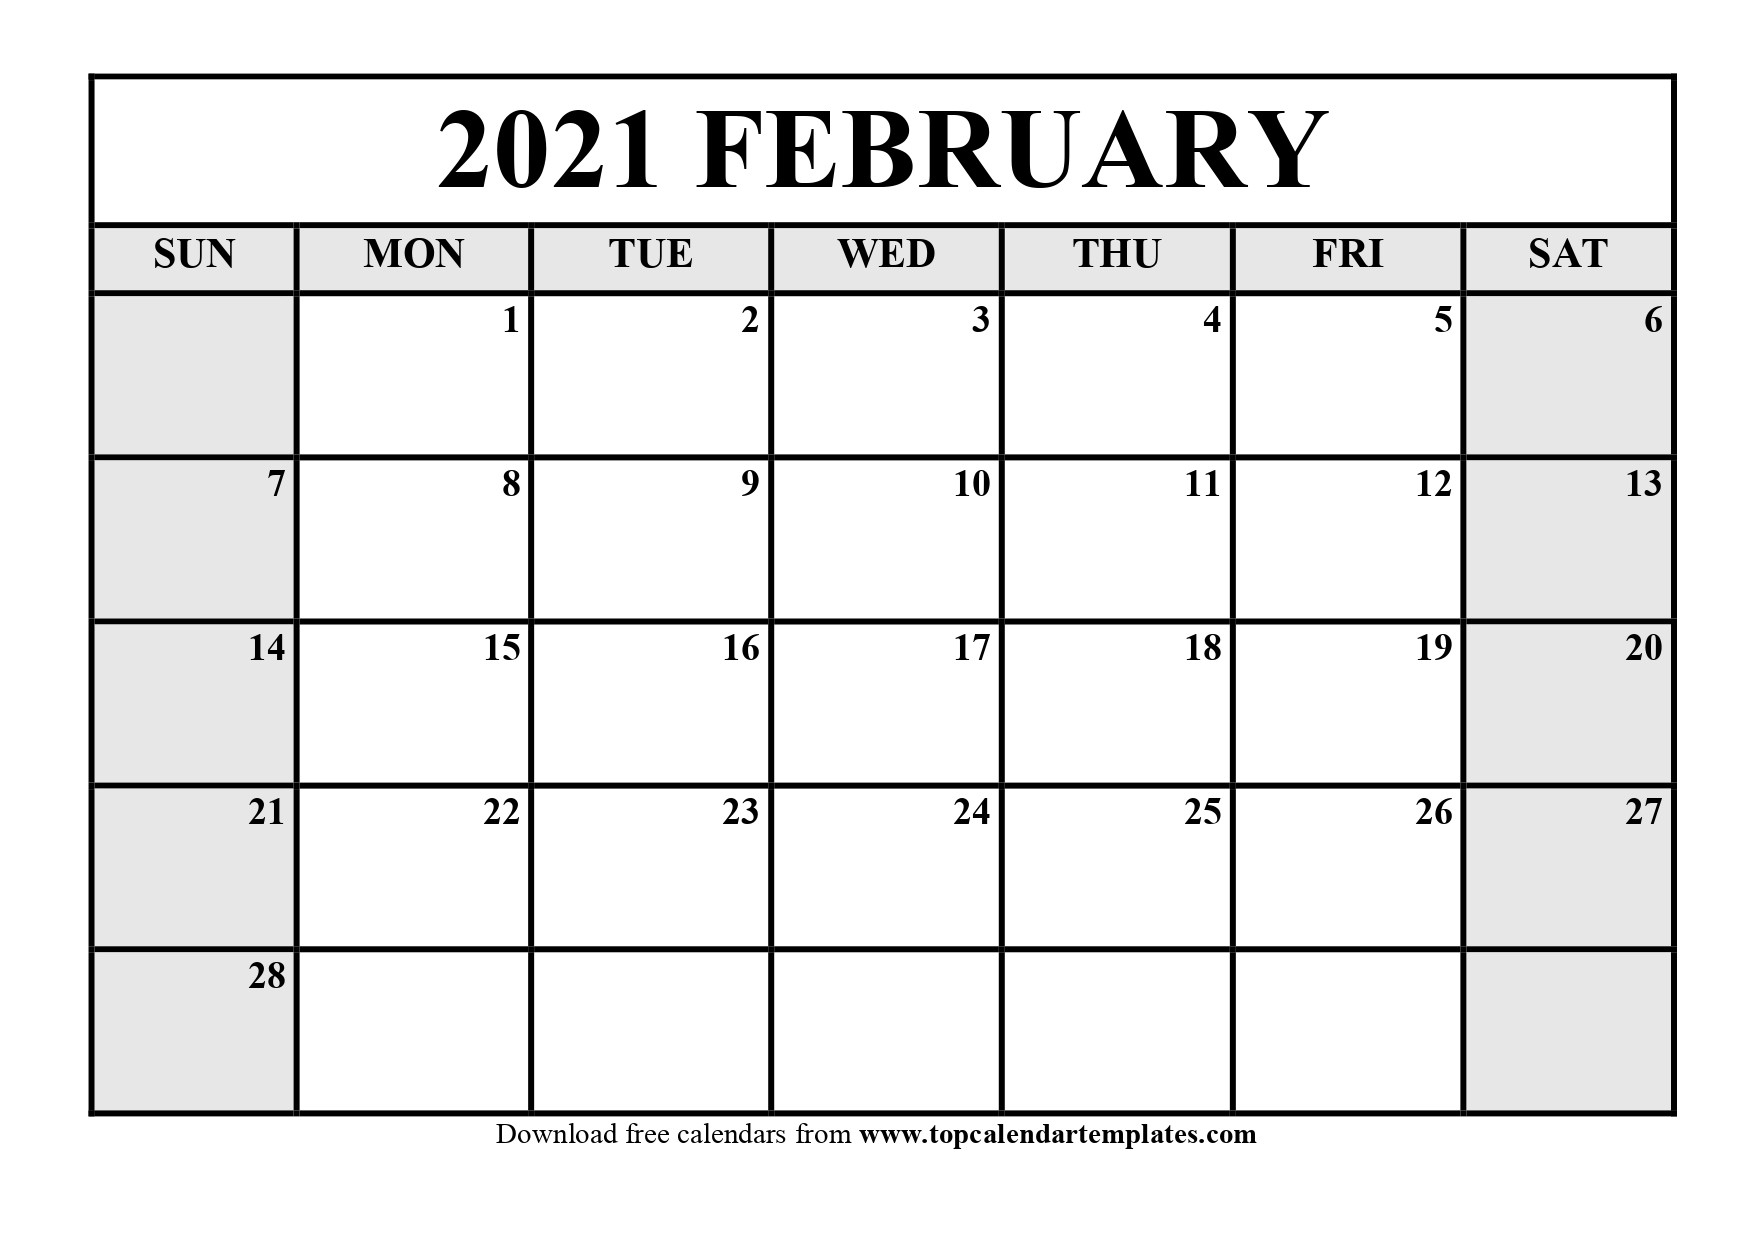 2021 Print Free Calendars Without Downloading | Calendar  2021 2021 Monthly Calendar Printable Free